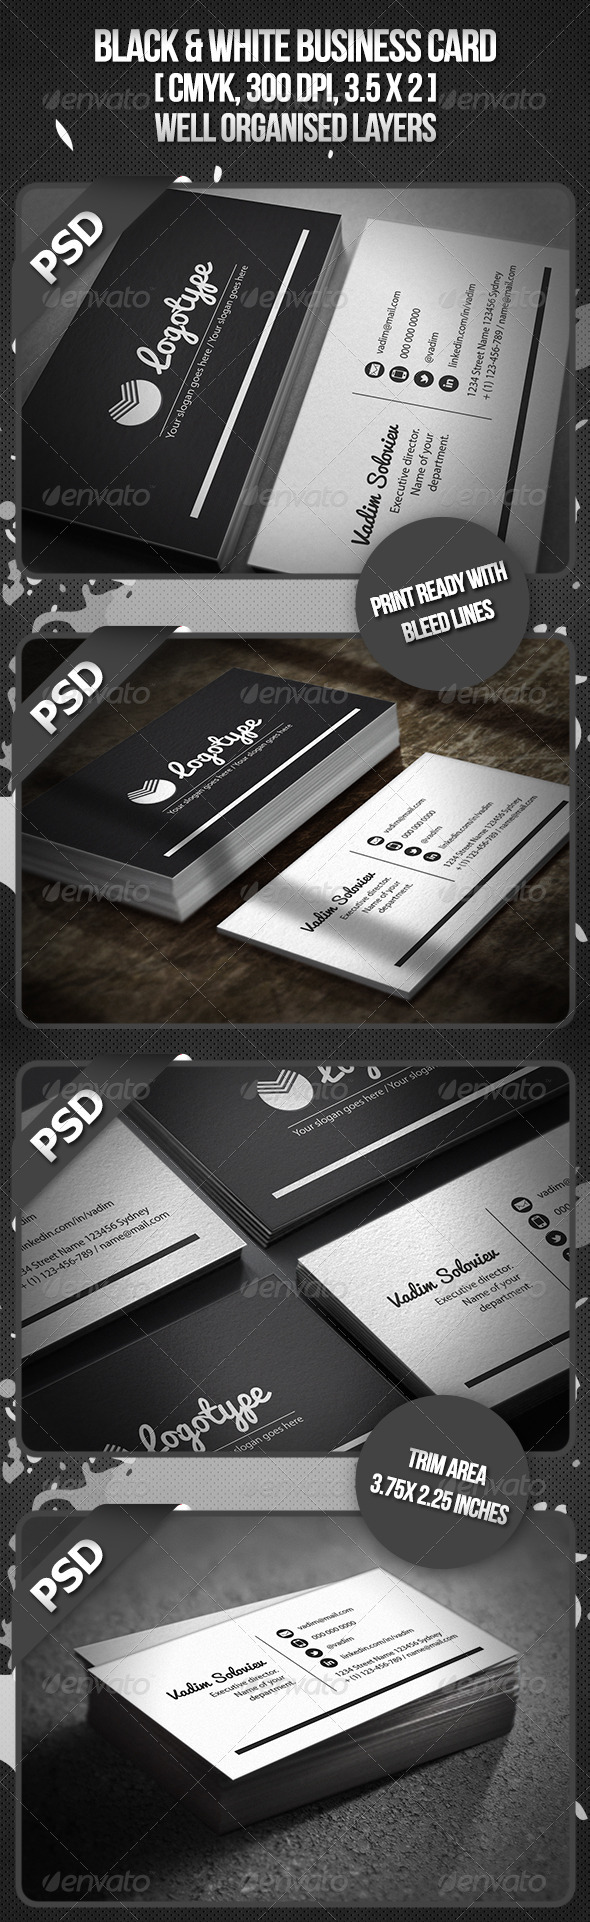 Black & White Business Card - Corporate Business Cards